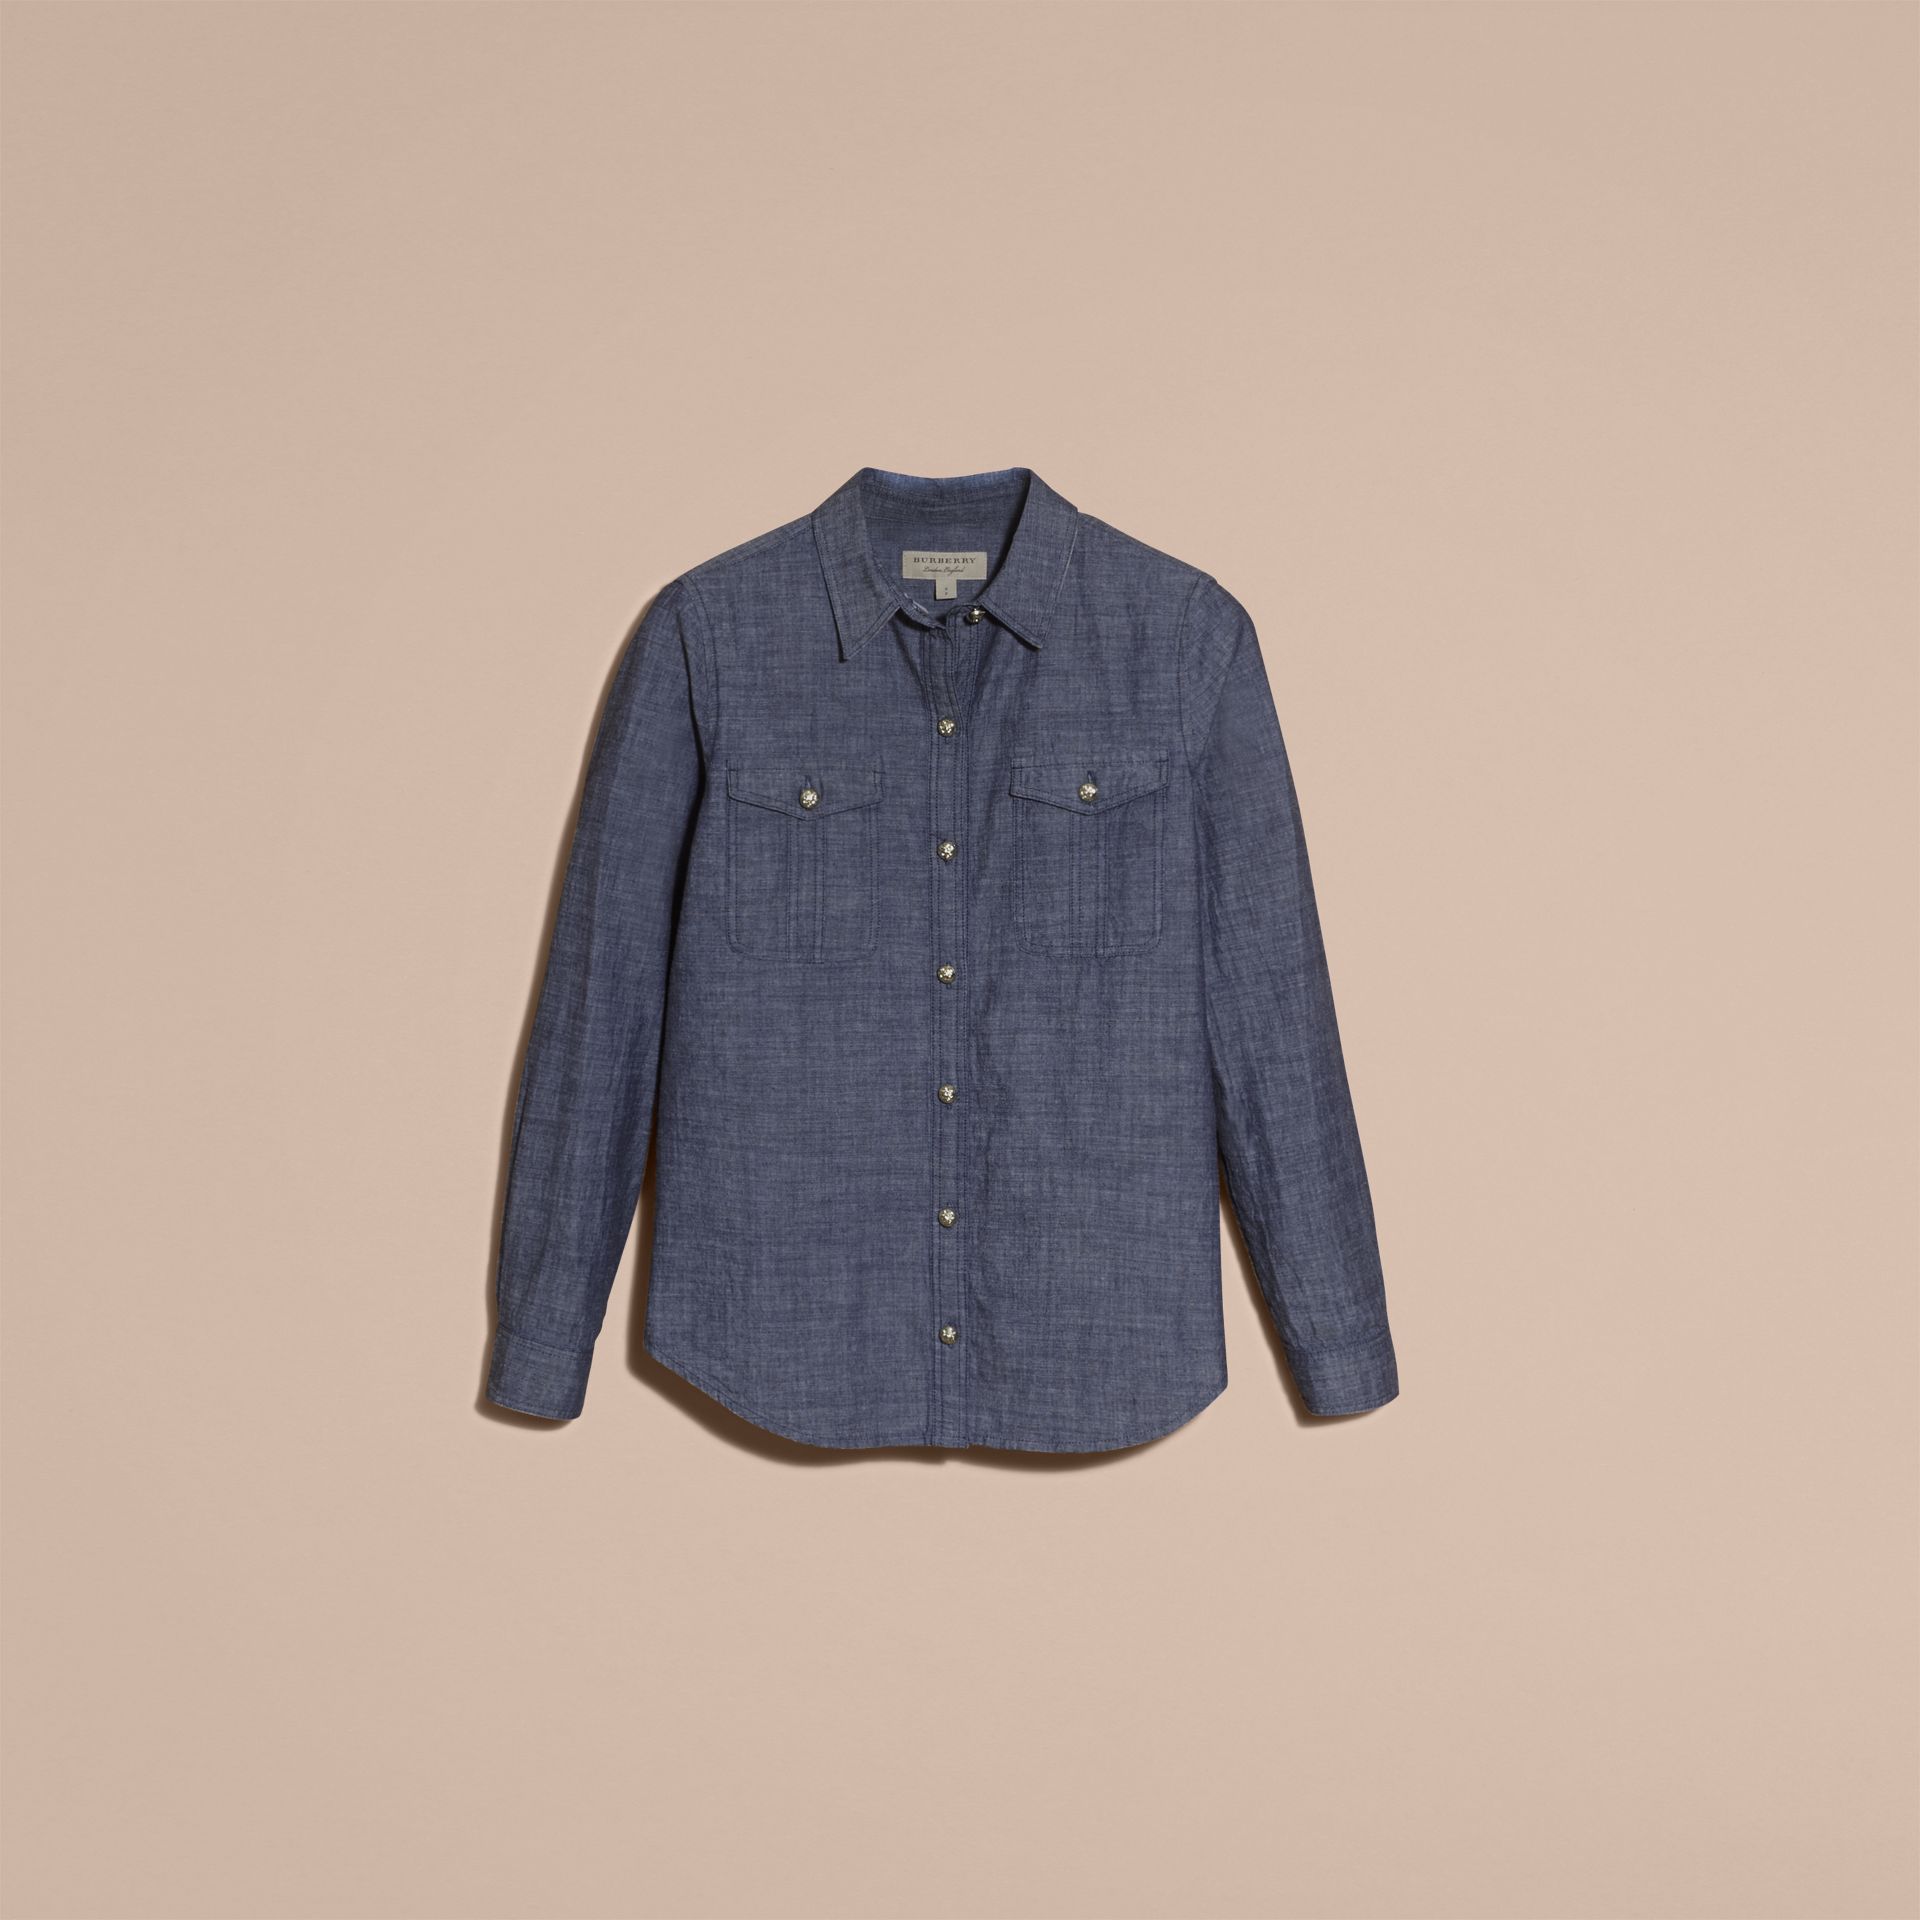 Light indigo Check Detail Denim Shirt - gallery image 4